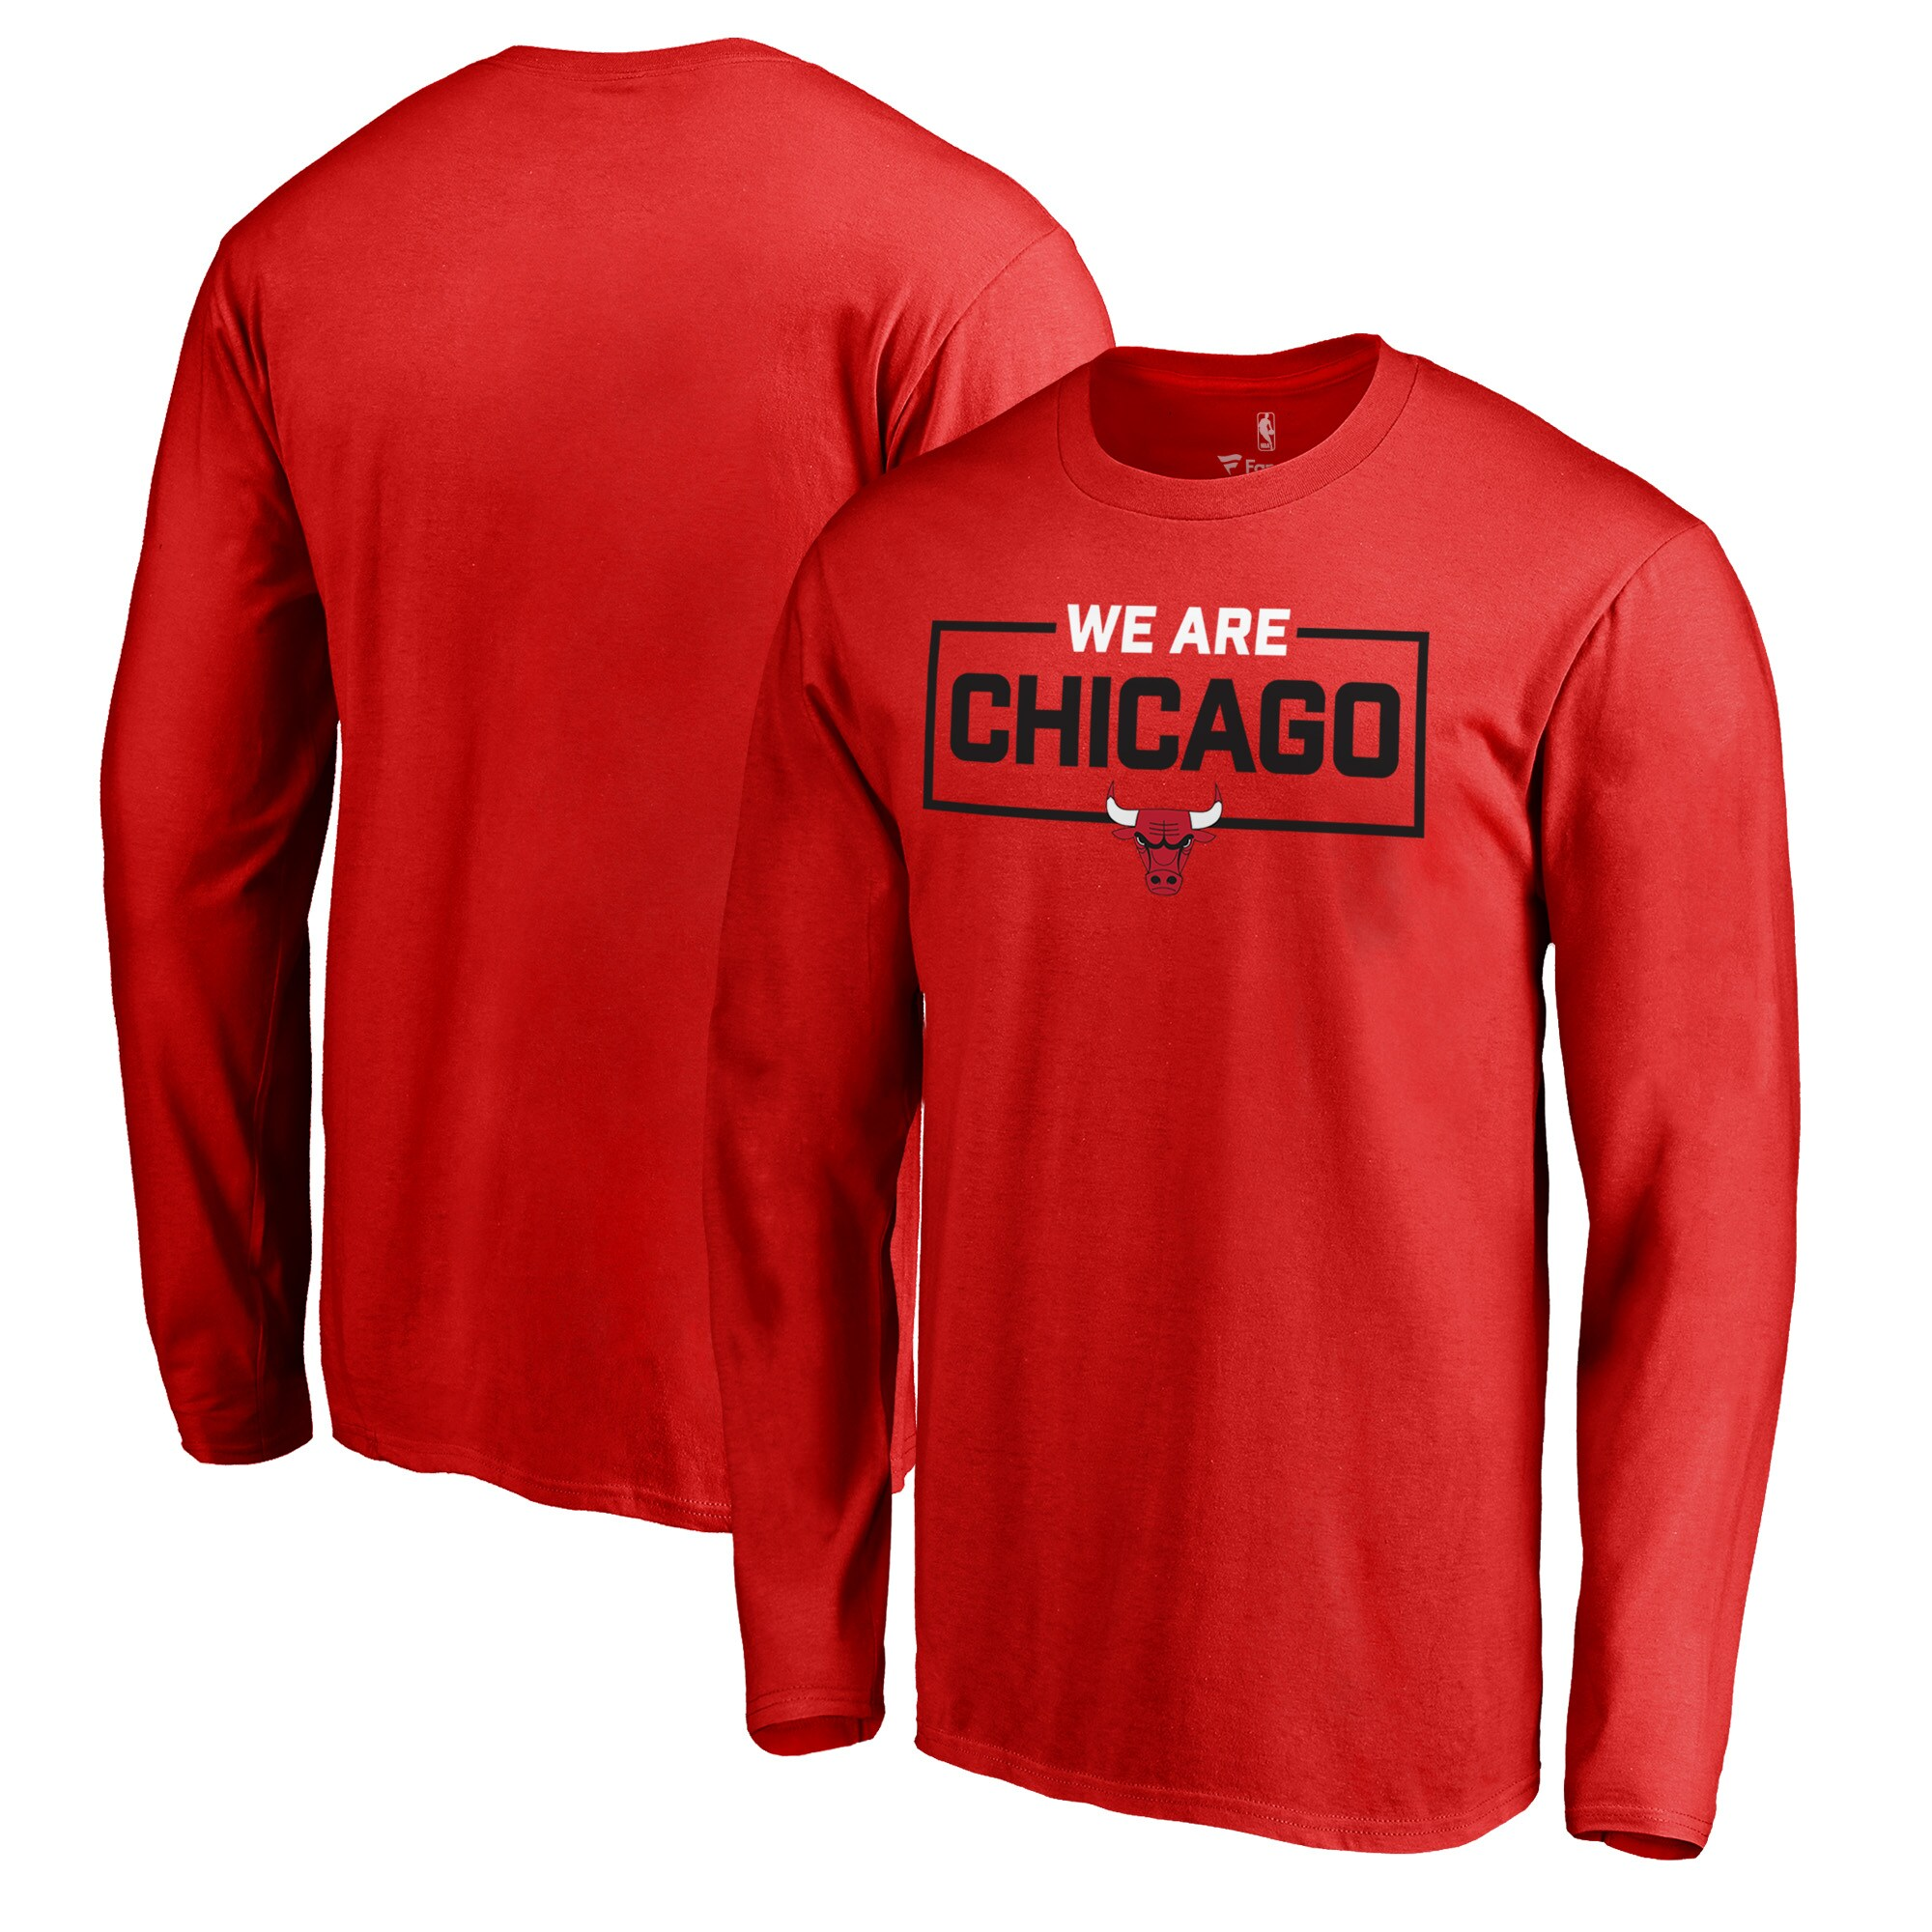 Chicago Bulls Fanatics Branded We Are Iconic Collection Long Sleeve T-Shirt - Red